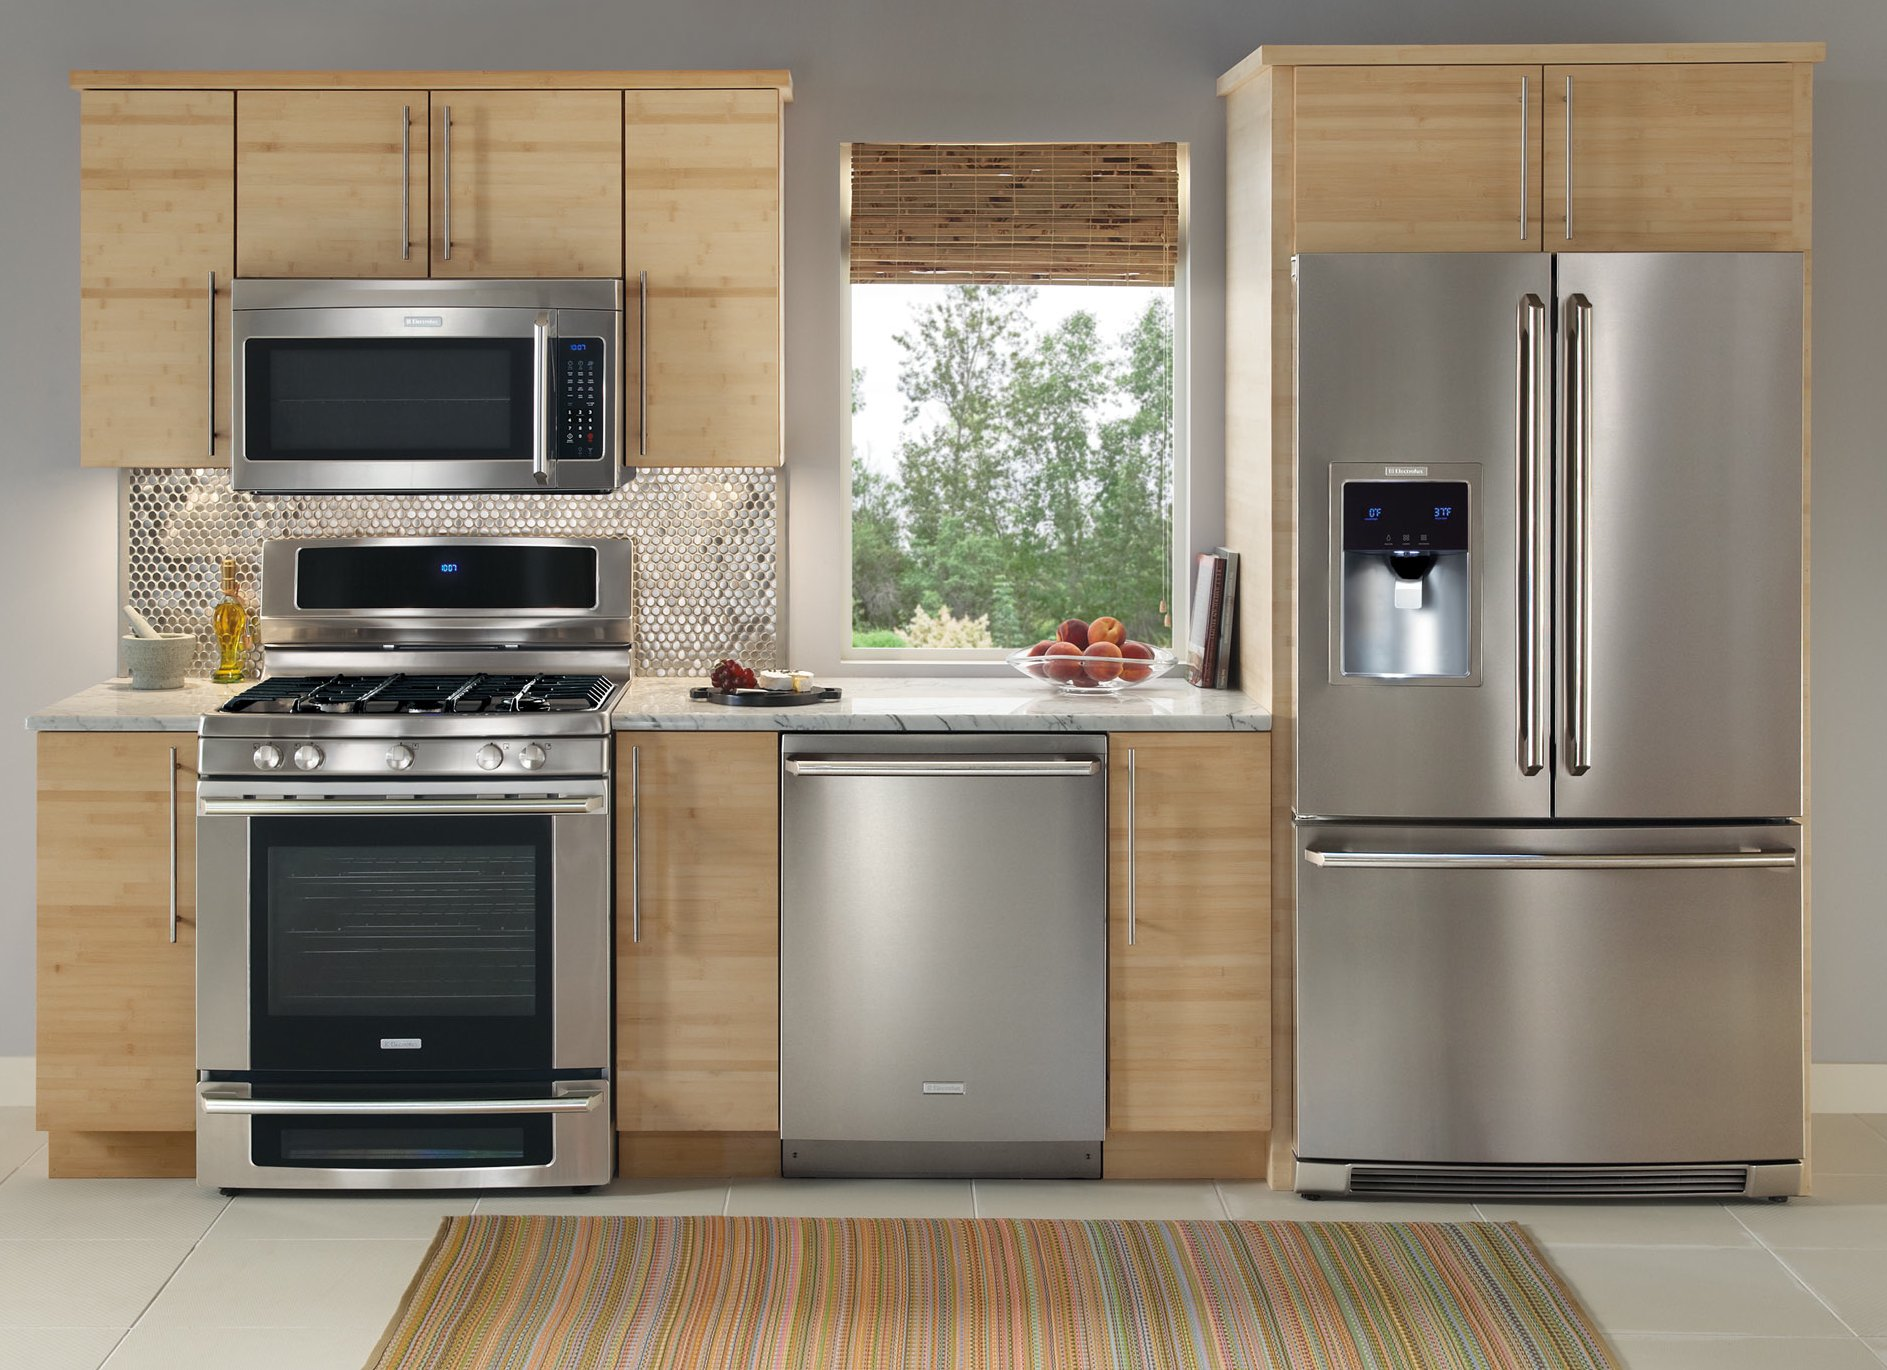 refrigerator for small kitchen lg appliances reviews tampa appliance repair specialist hillsborough pinellas